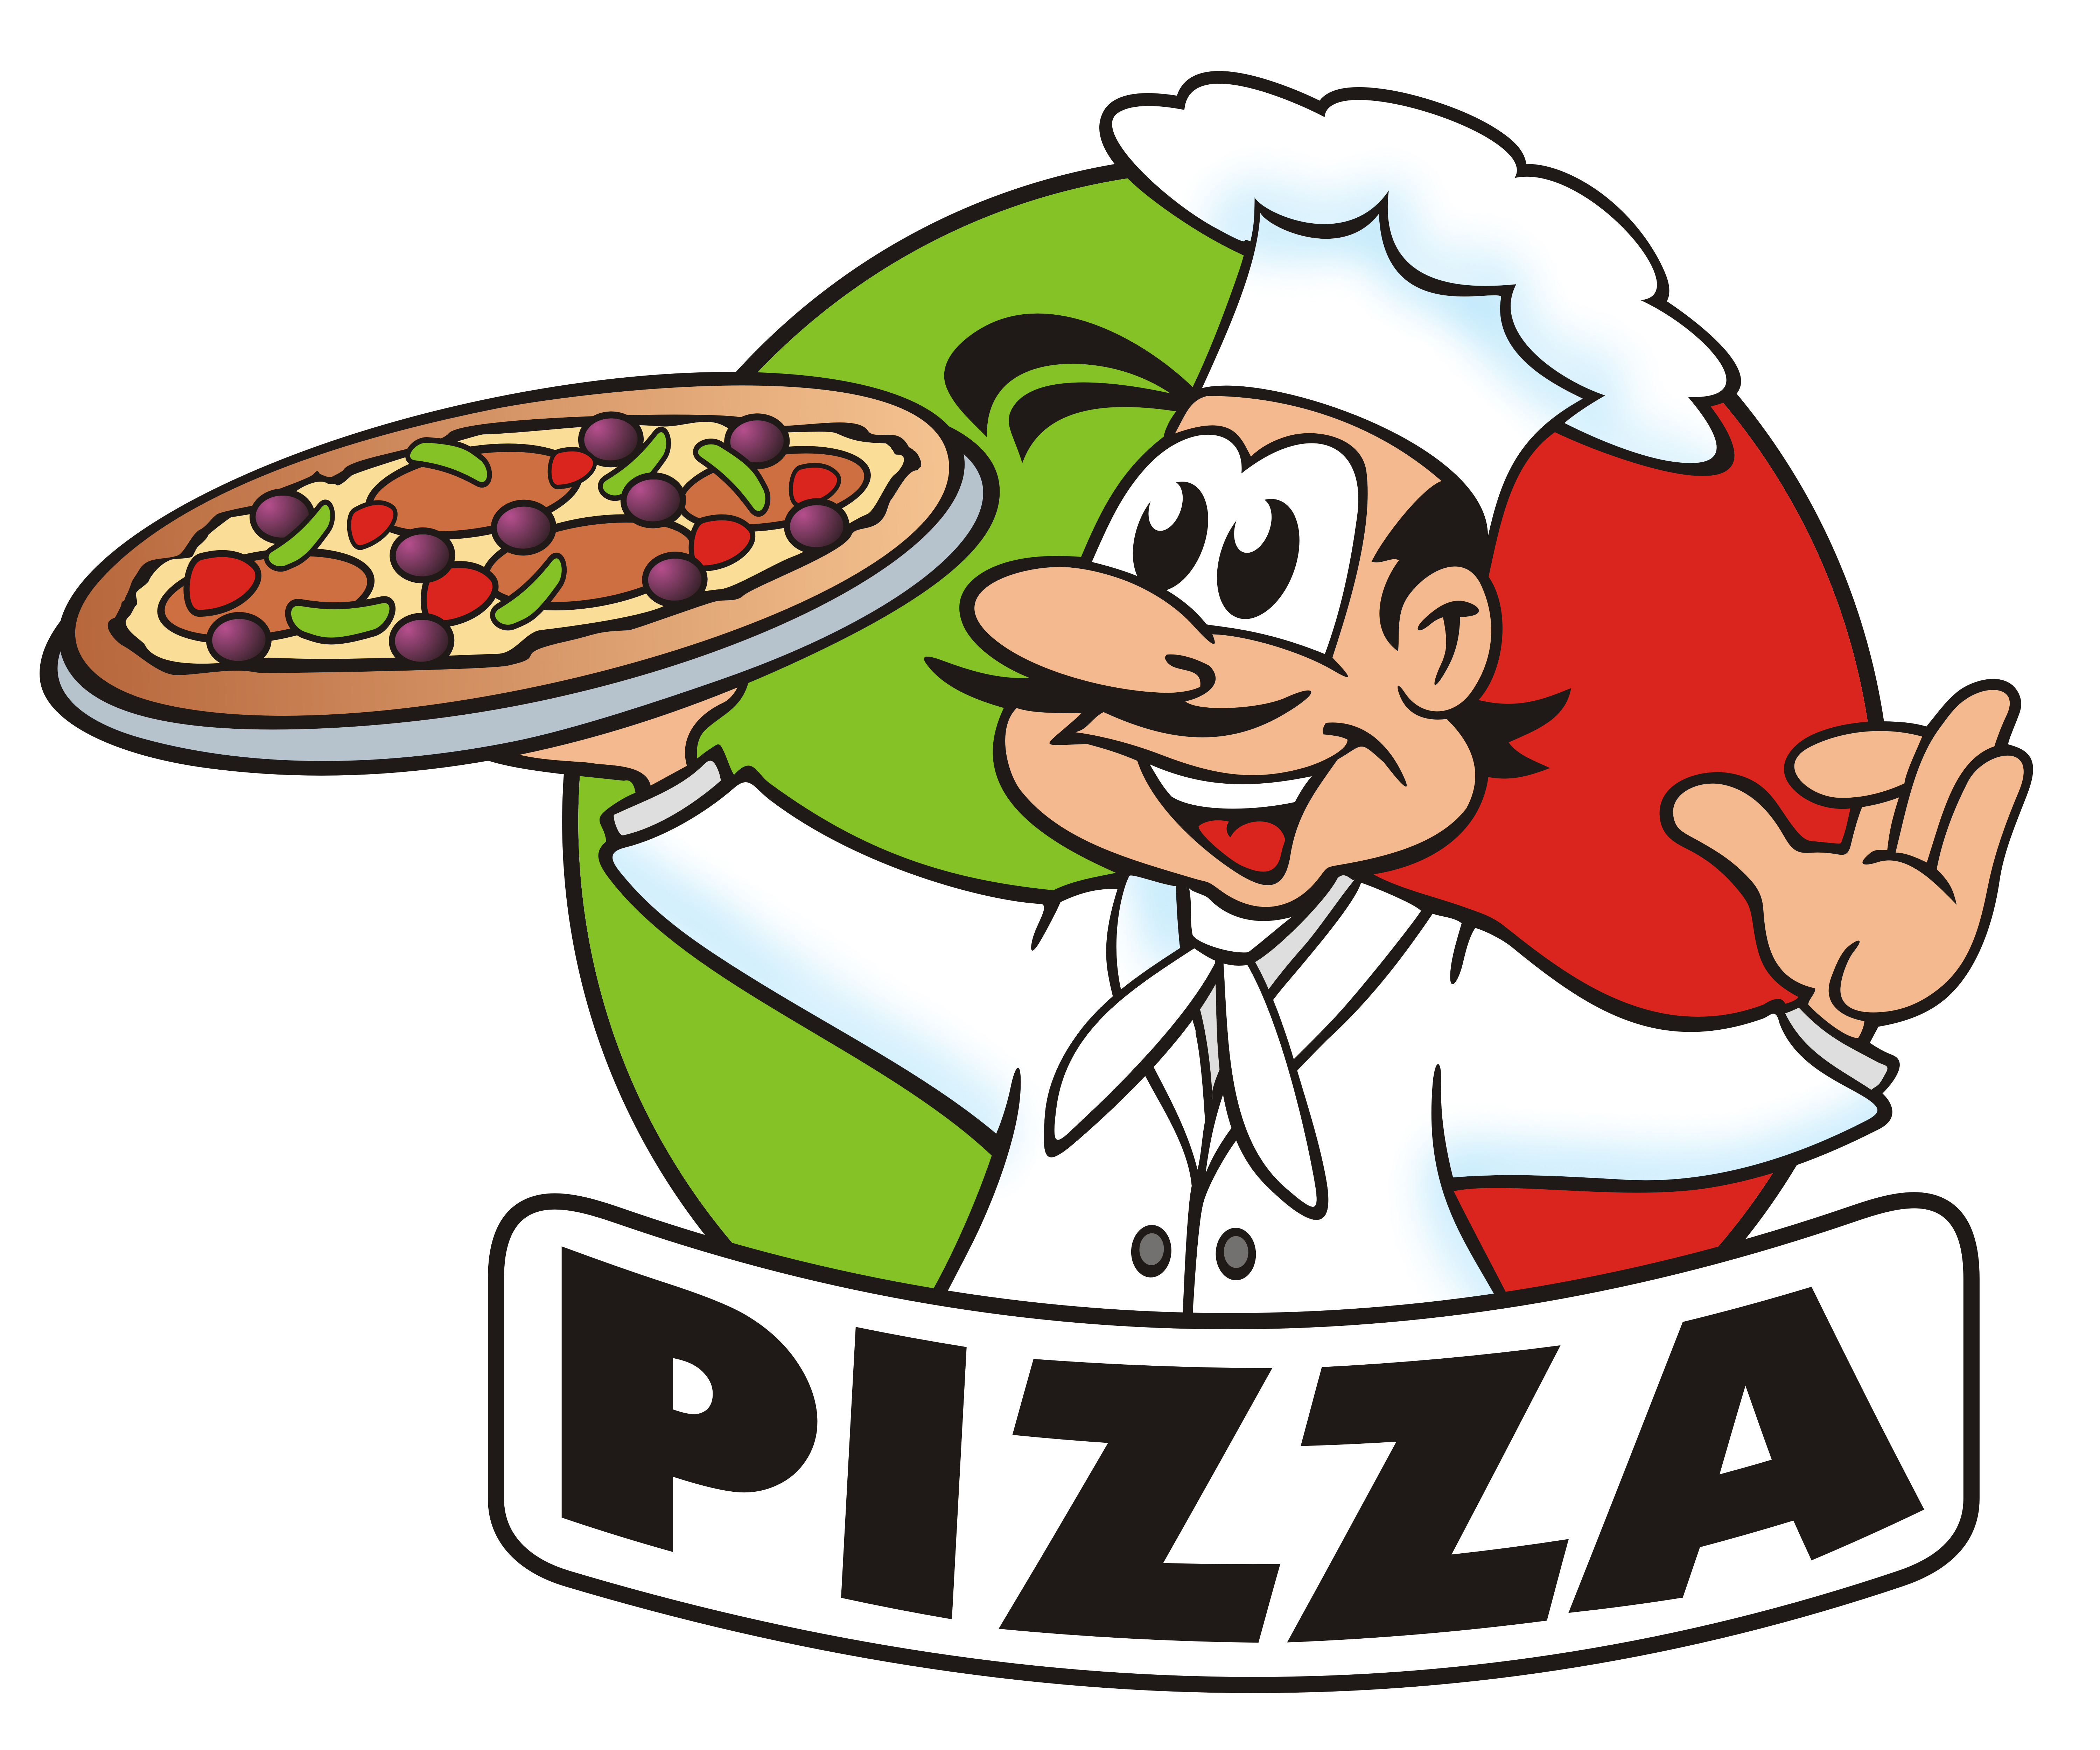 Free Pizza Cartoon Images, Download Free Clip Art, Free Clip.